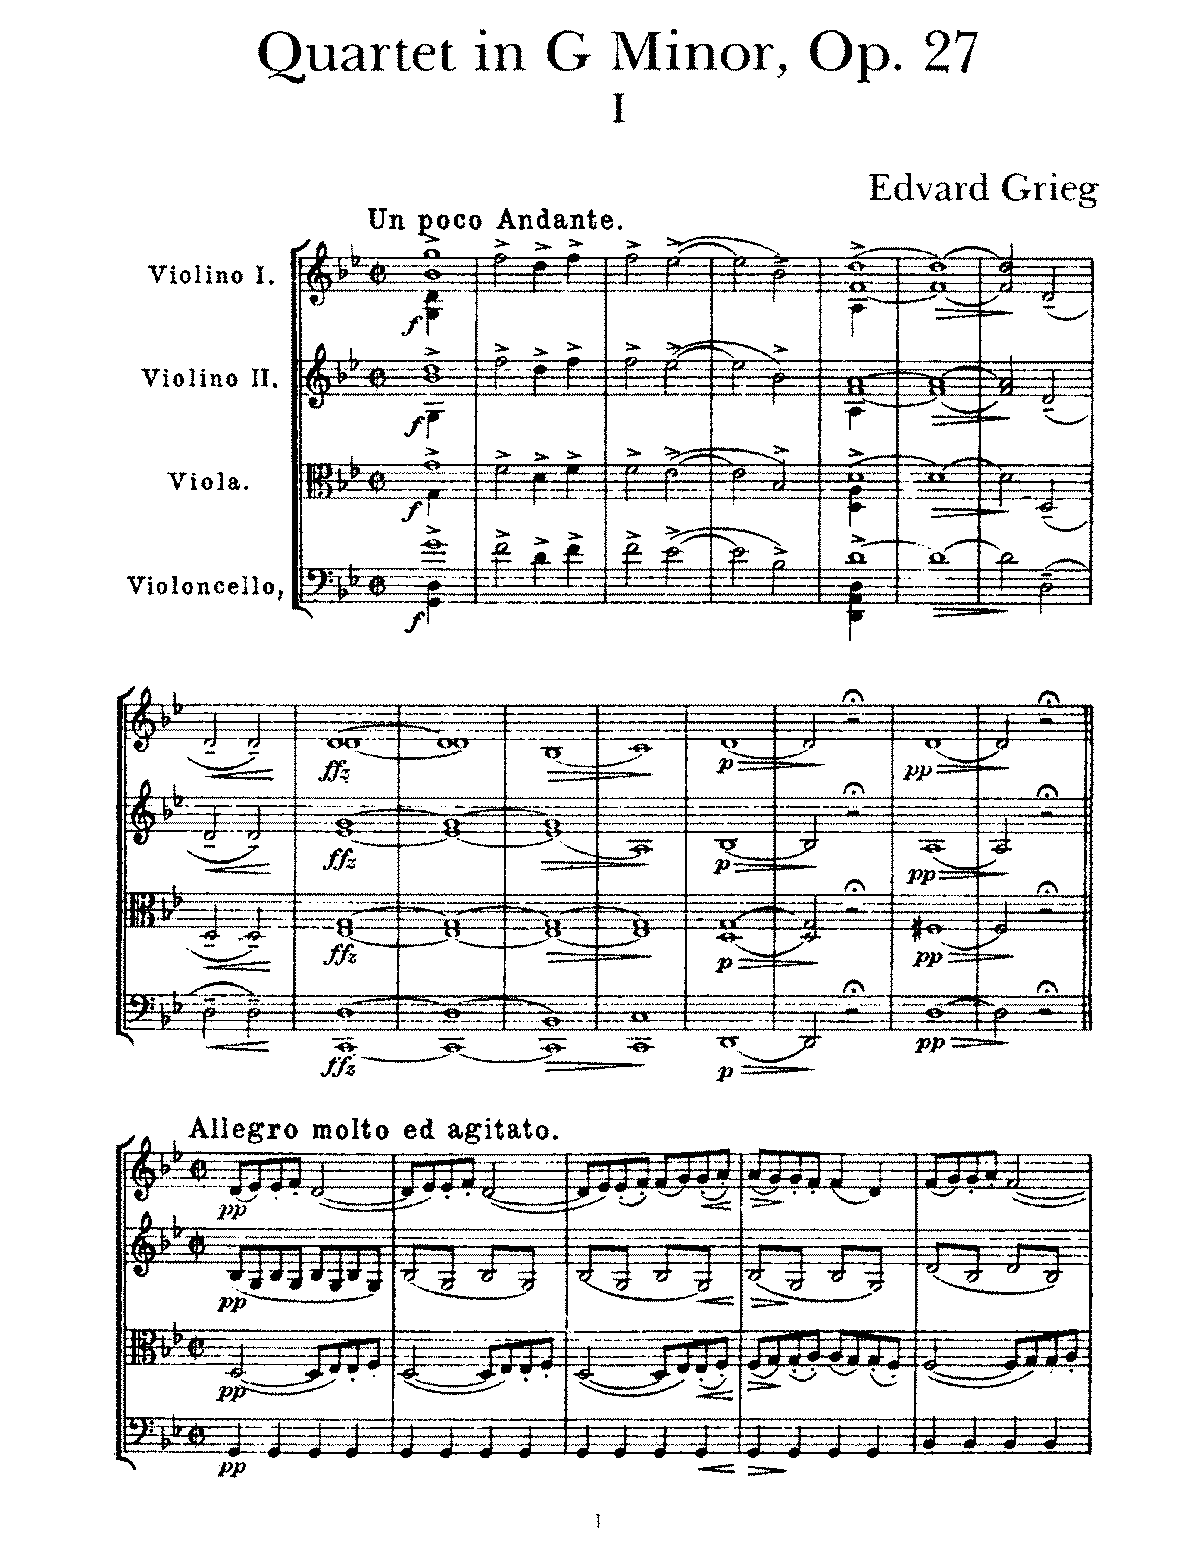 PMLP60509-Grieg String Quartet in g minor Op.27.pdf